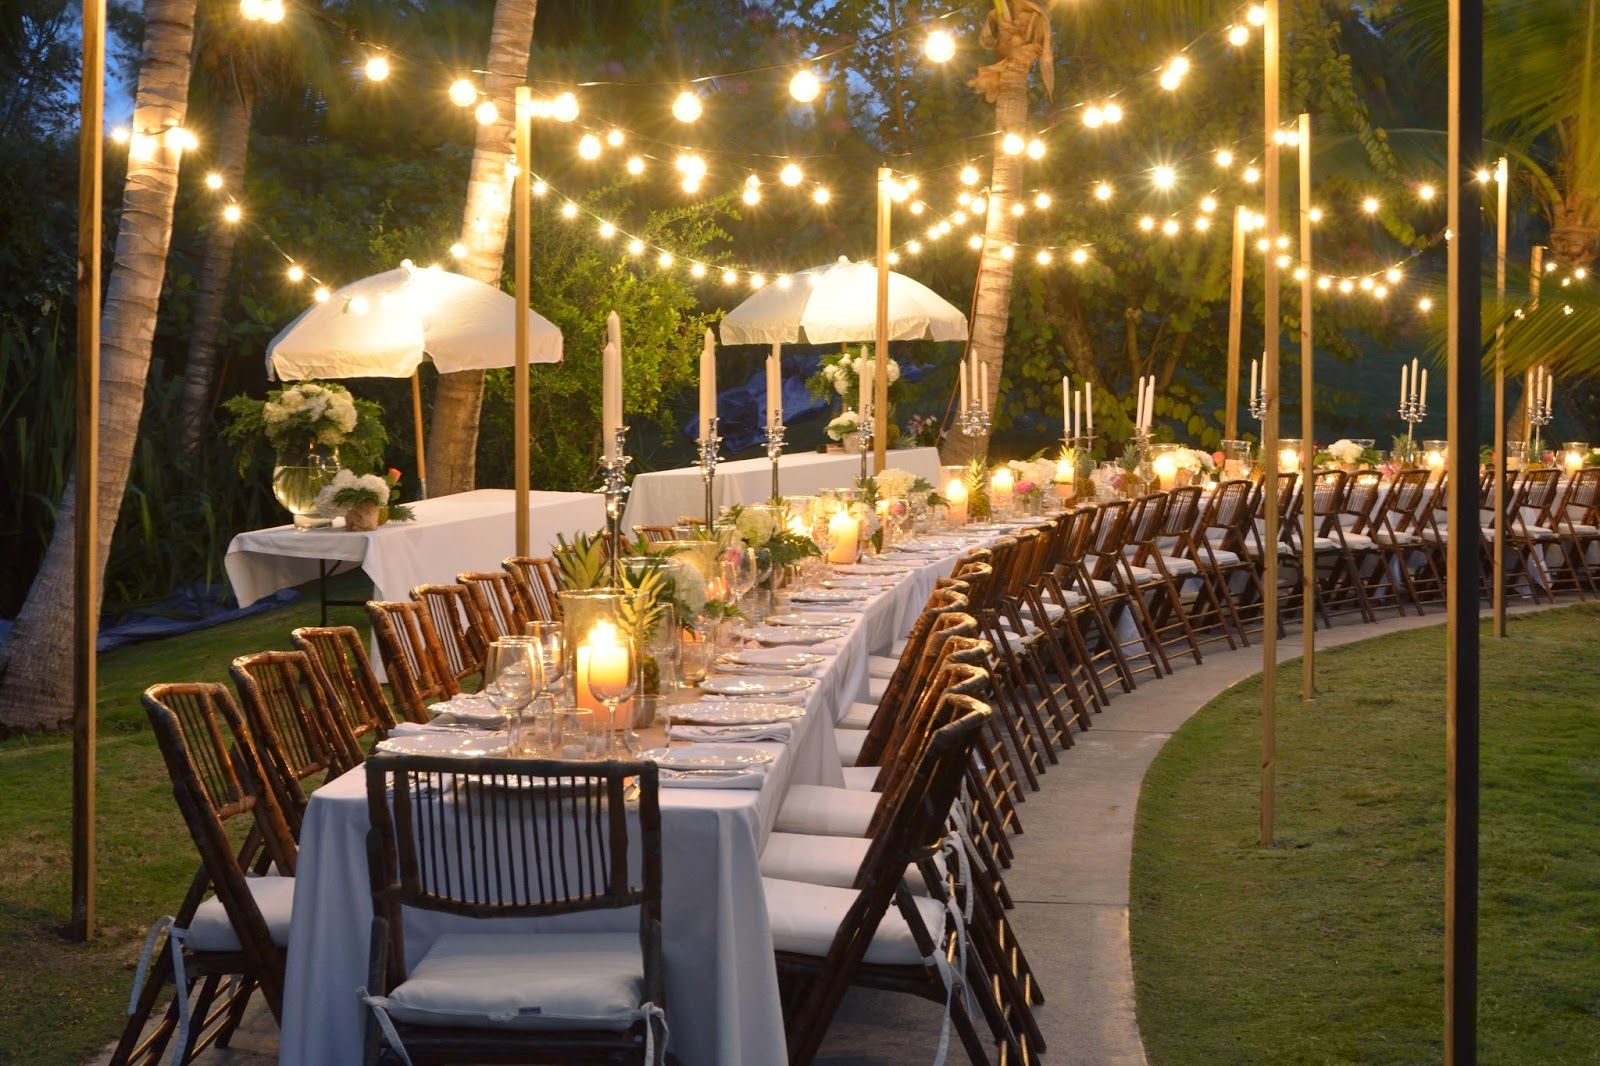 Elegant Outdoor Party Long Curved Table Tropical